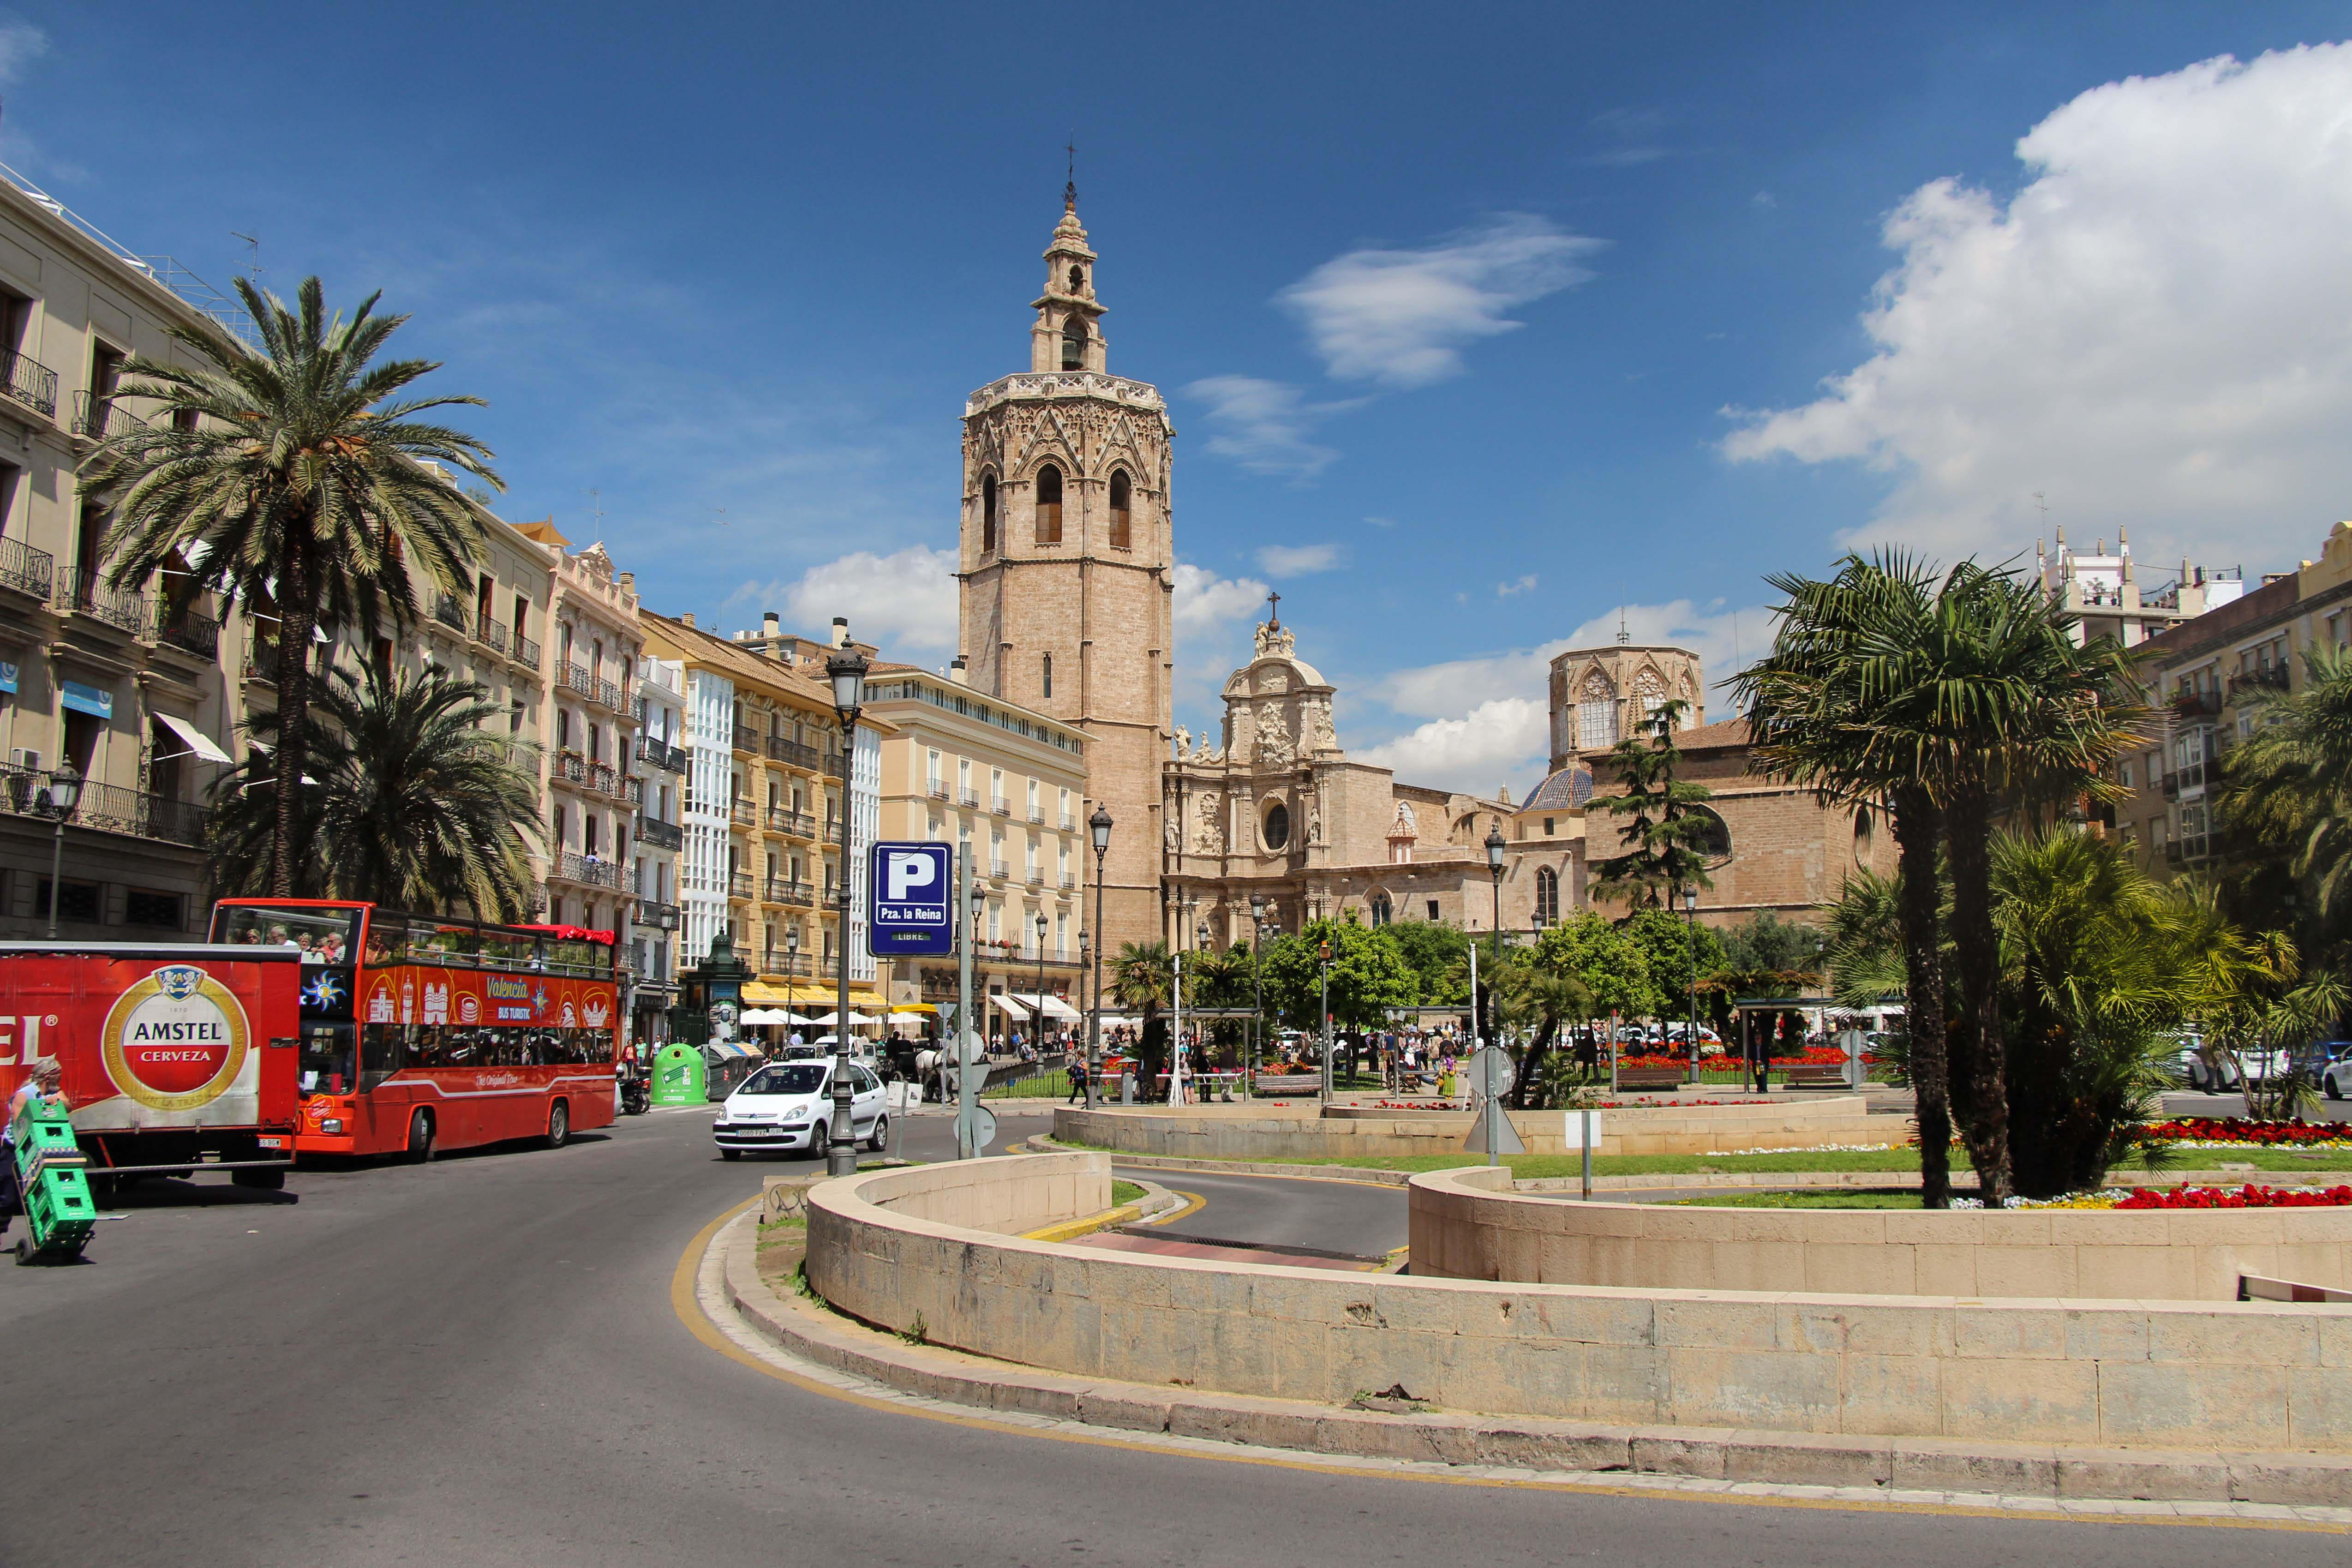 Top Destinations in Europe - Valencia, Spain